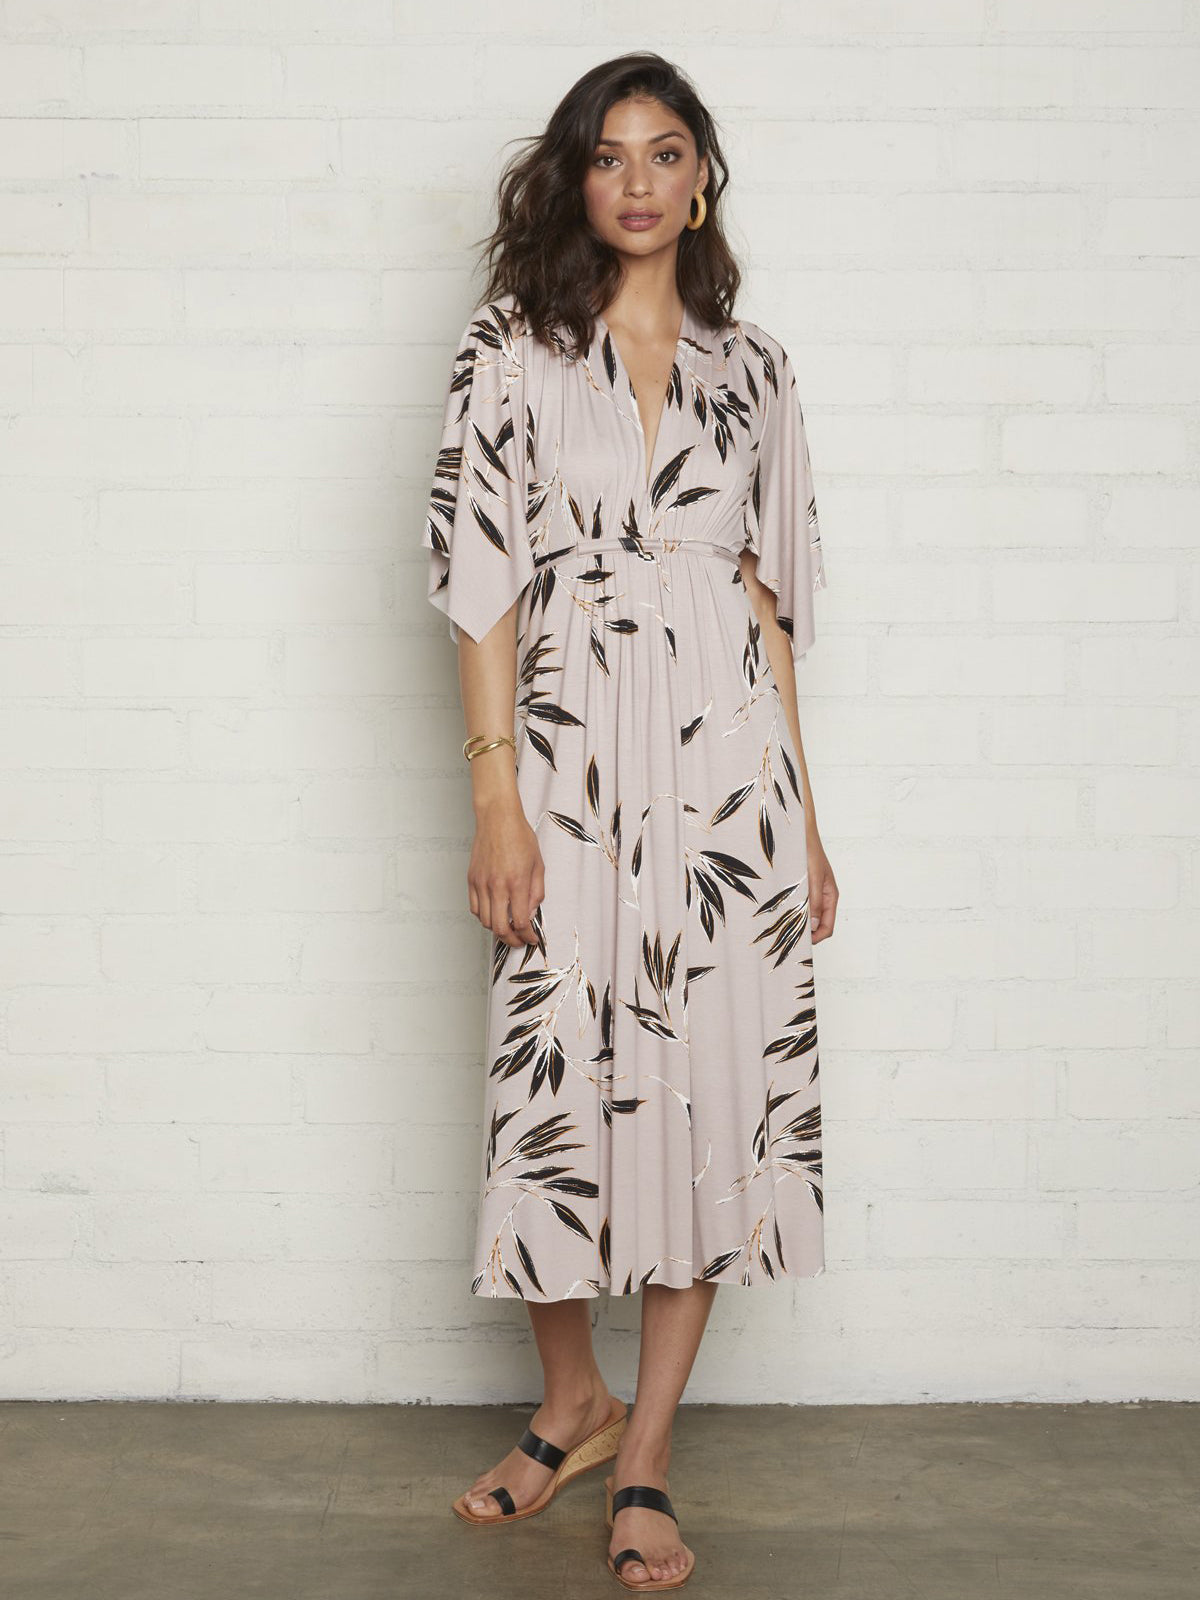 Rachel Pally Maternity Mid-Length Caftan Dress - Cane Print | TILDEN